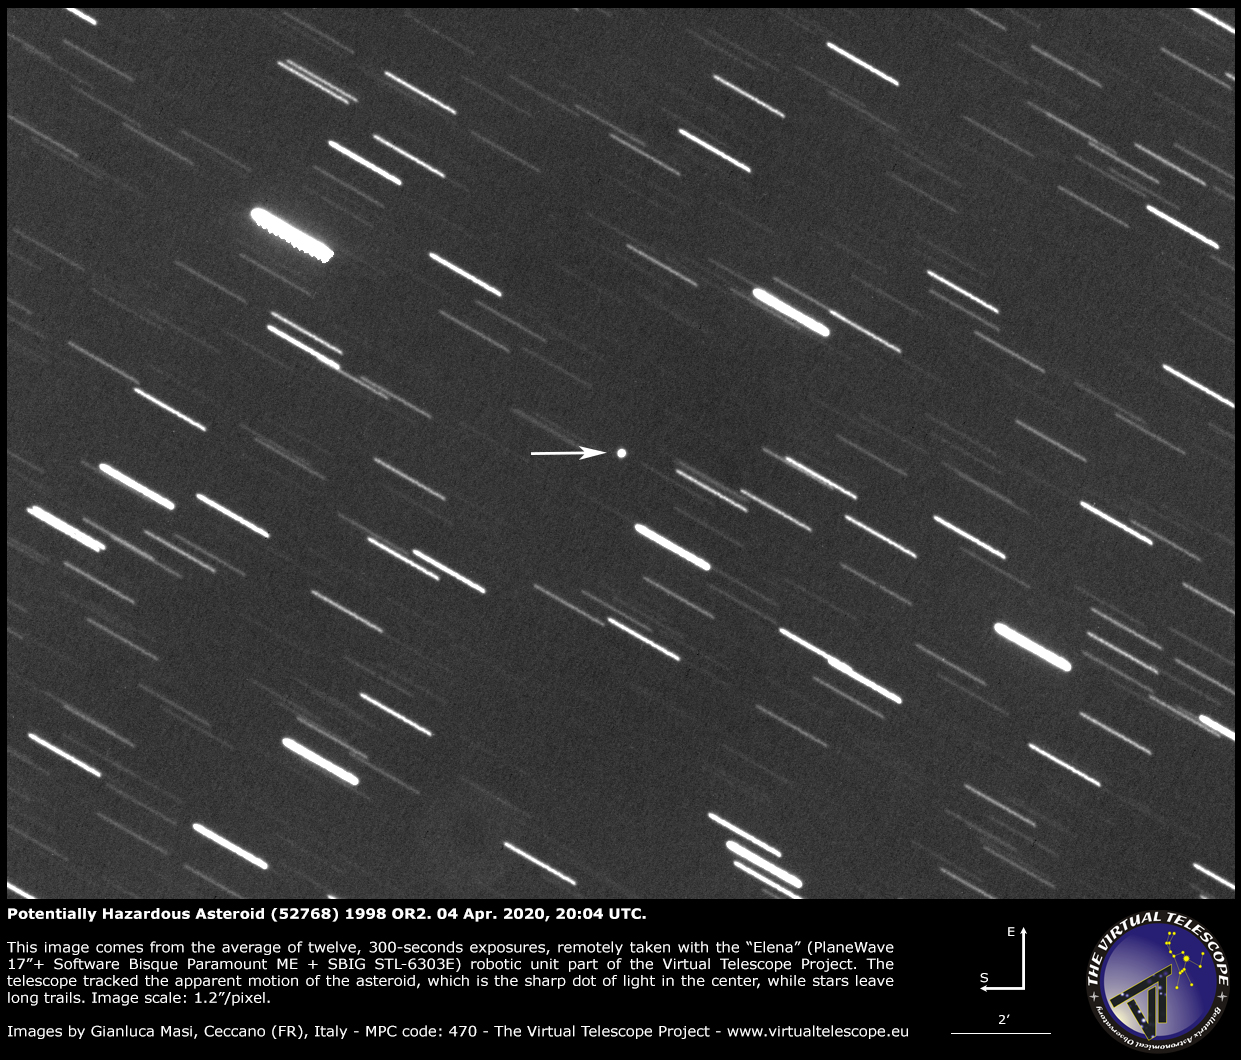 Potentially Hazardous Asteroid (52768) 1998 OR2: a image - 04 Apr. 2020